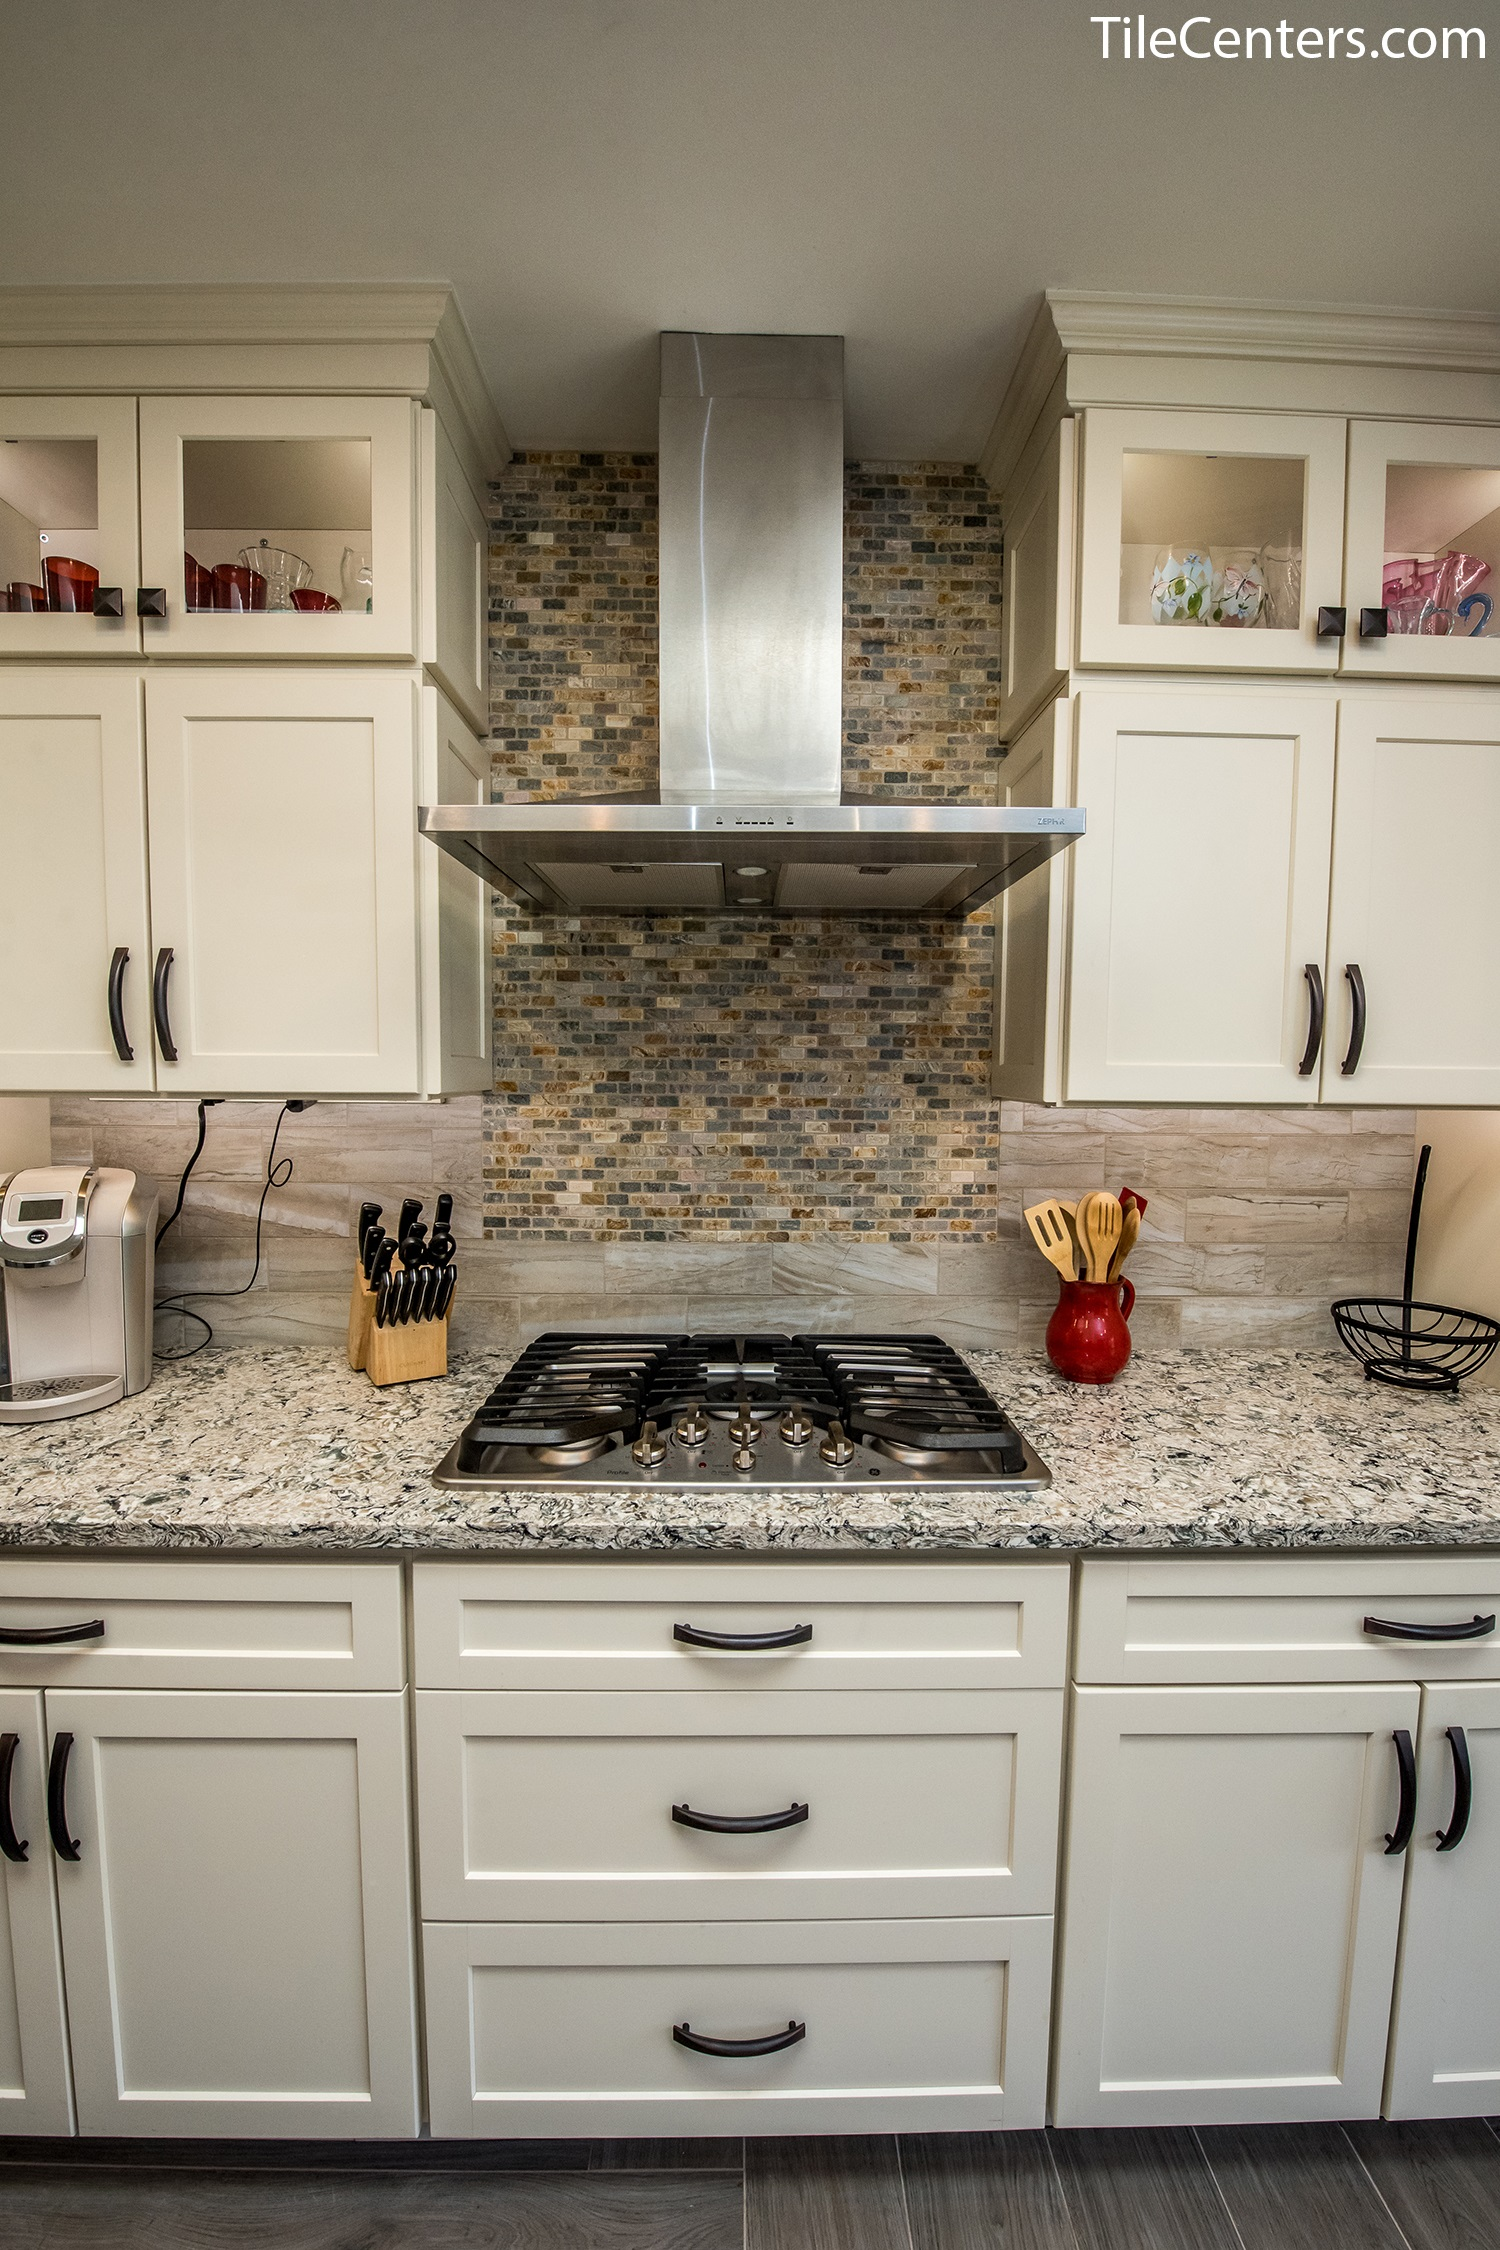 Gorgeous Kitchen Renovation In Potomac Maryland: Hope Ct, North Potomac, MD 20878: Tile Center